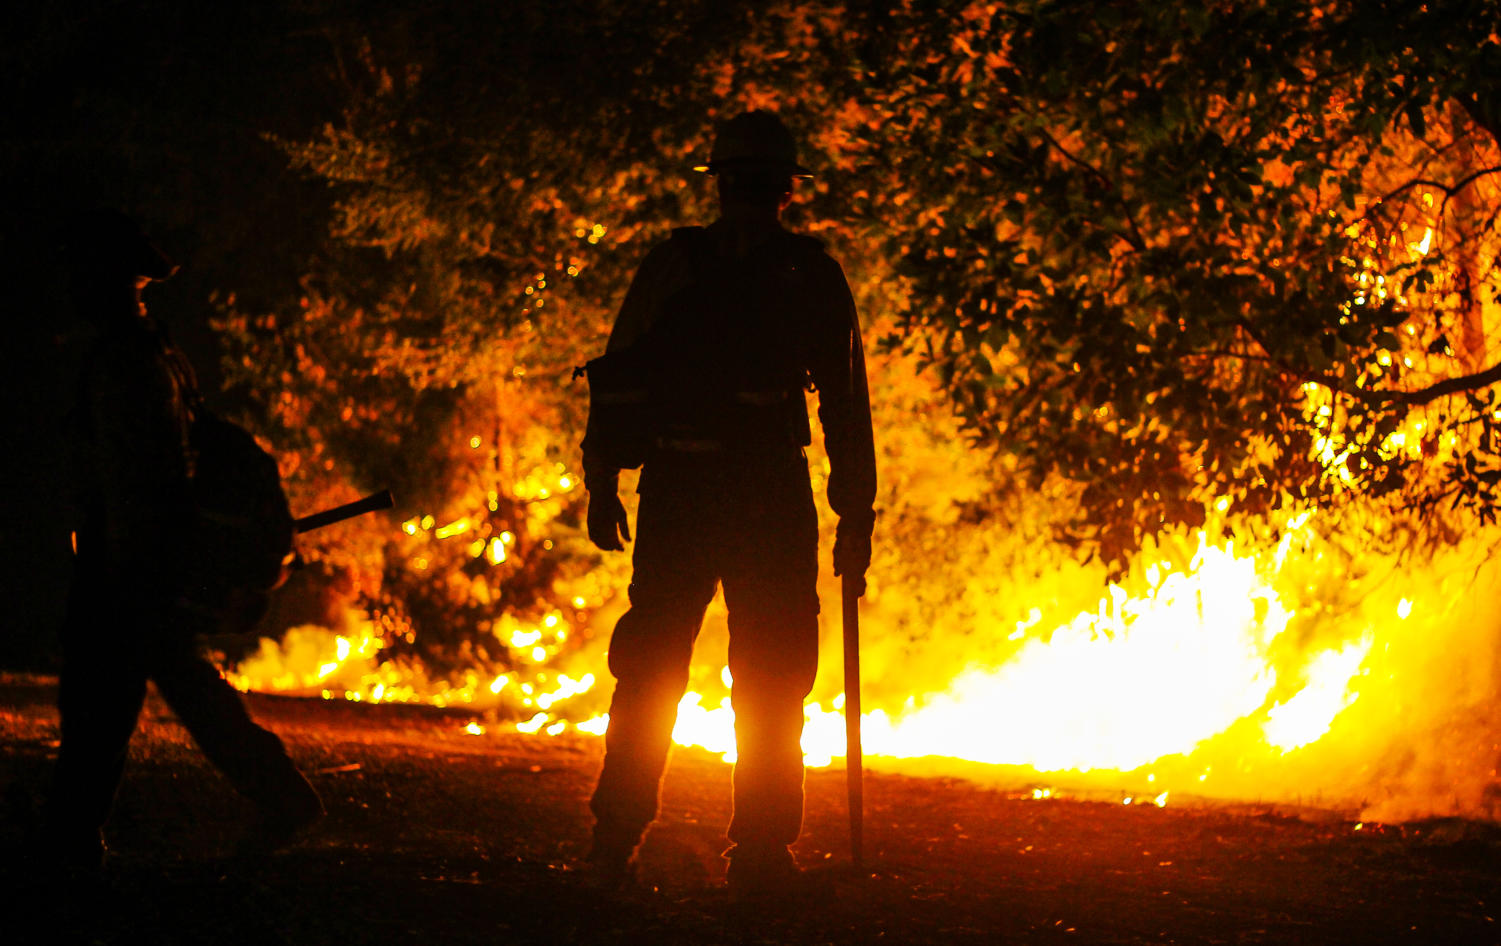 A firefighter watches a controlled burn outside the juvenile correctional facility near Kenwood.